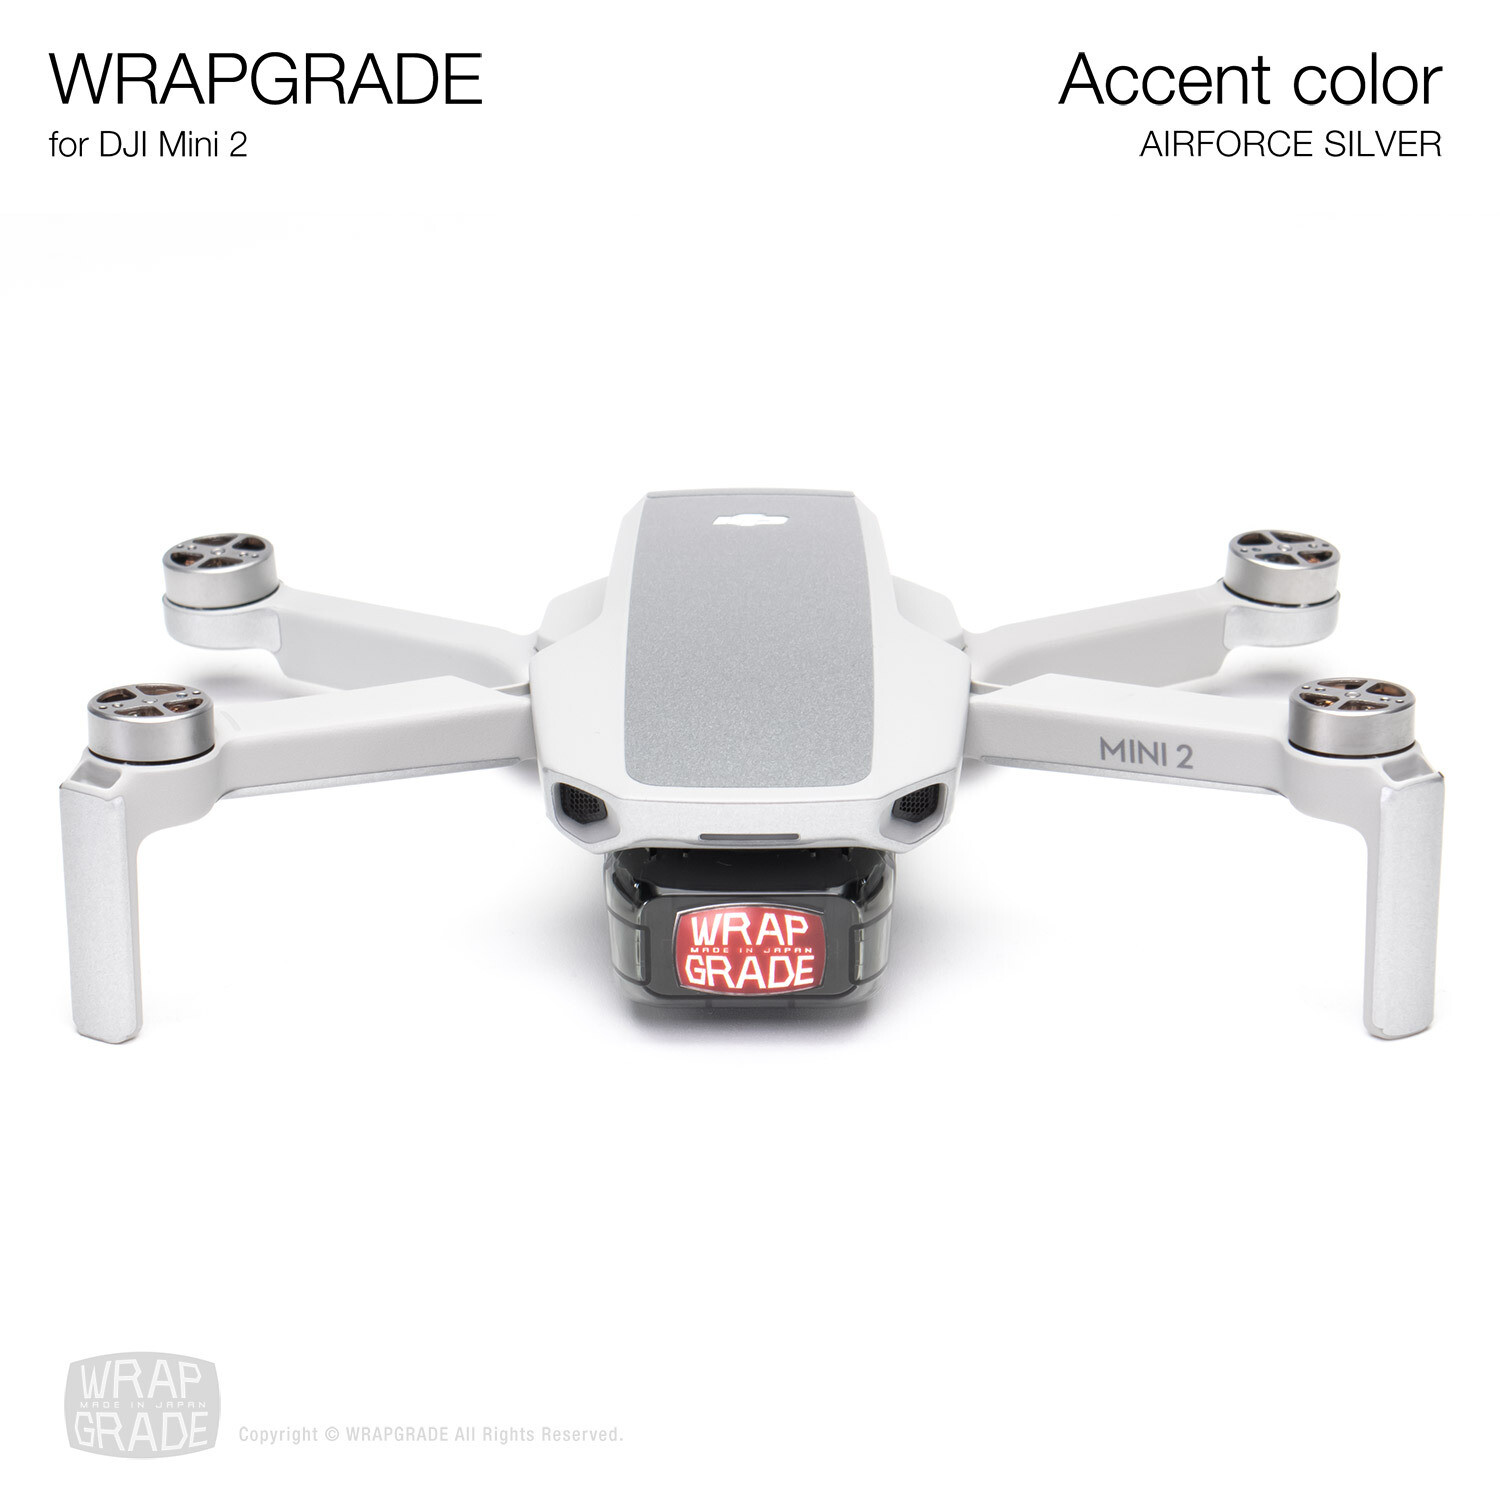 Wrapgrade Poly Skin for DJI Mini 2 | Accent color (AIRFORCE SILVER)